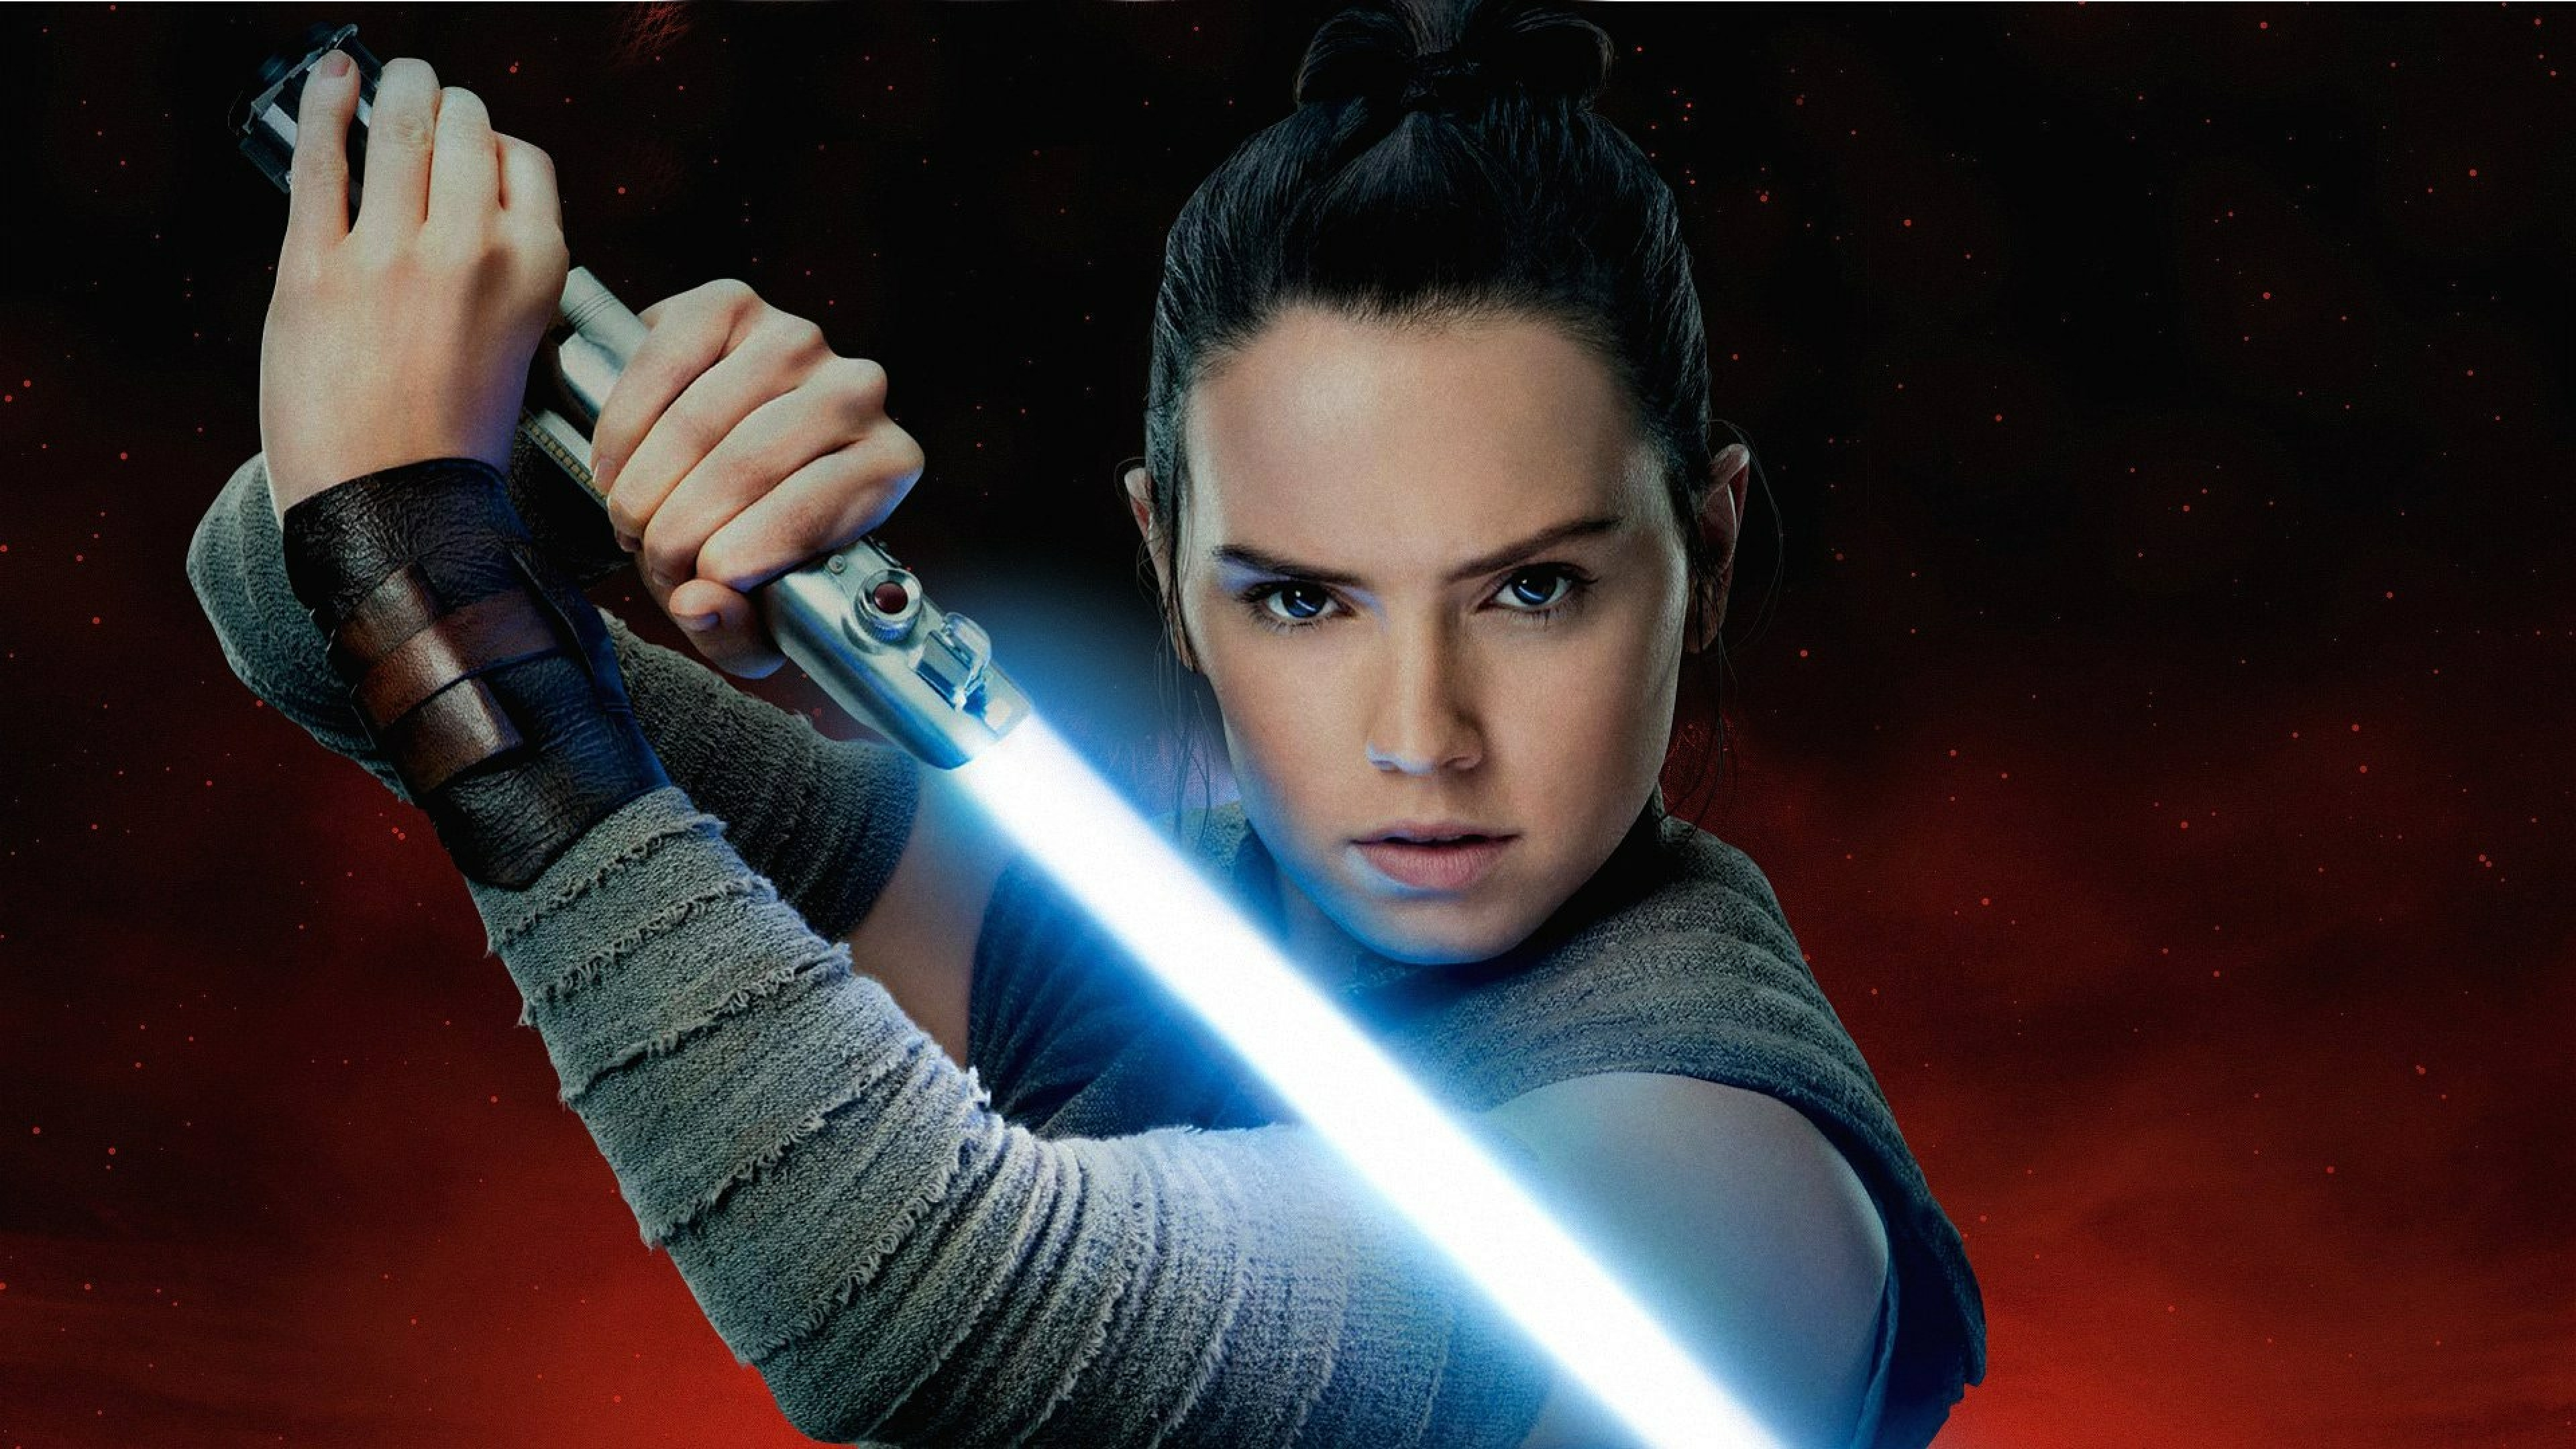 3840x2160 Rey Aka Daisy Ridley In Star Wars The Last Jedi 4k